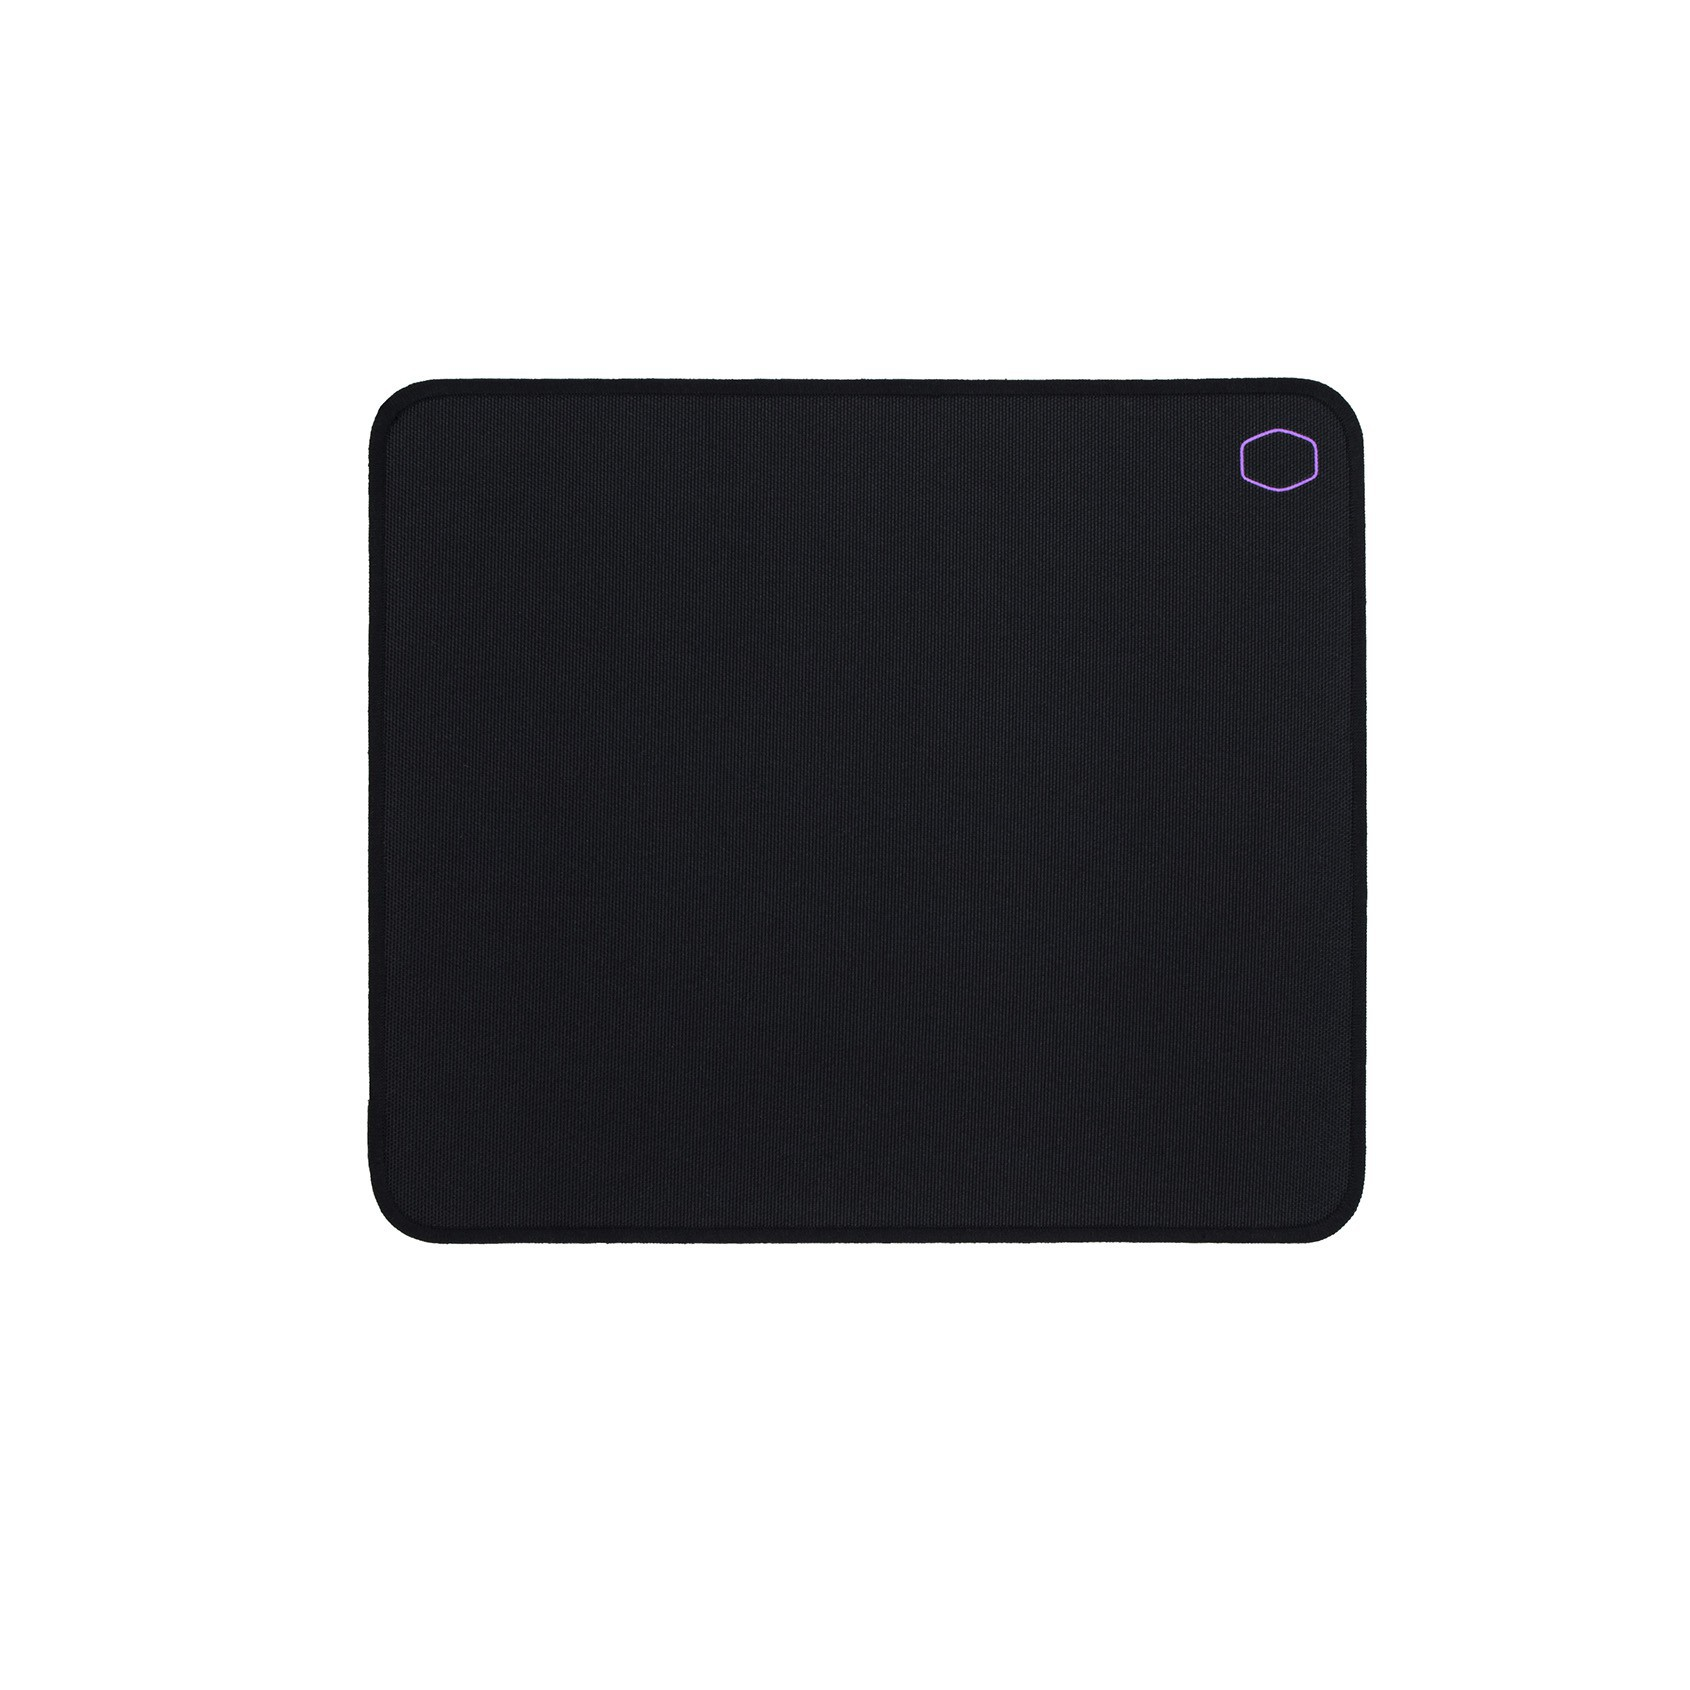 COOLER MASTER MASTERACCESSORY MP510 S BLACK 250X210MM MOUSE PAD